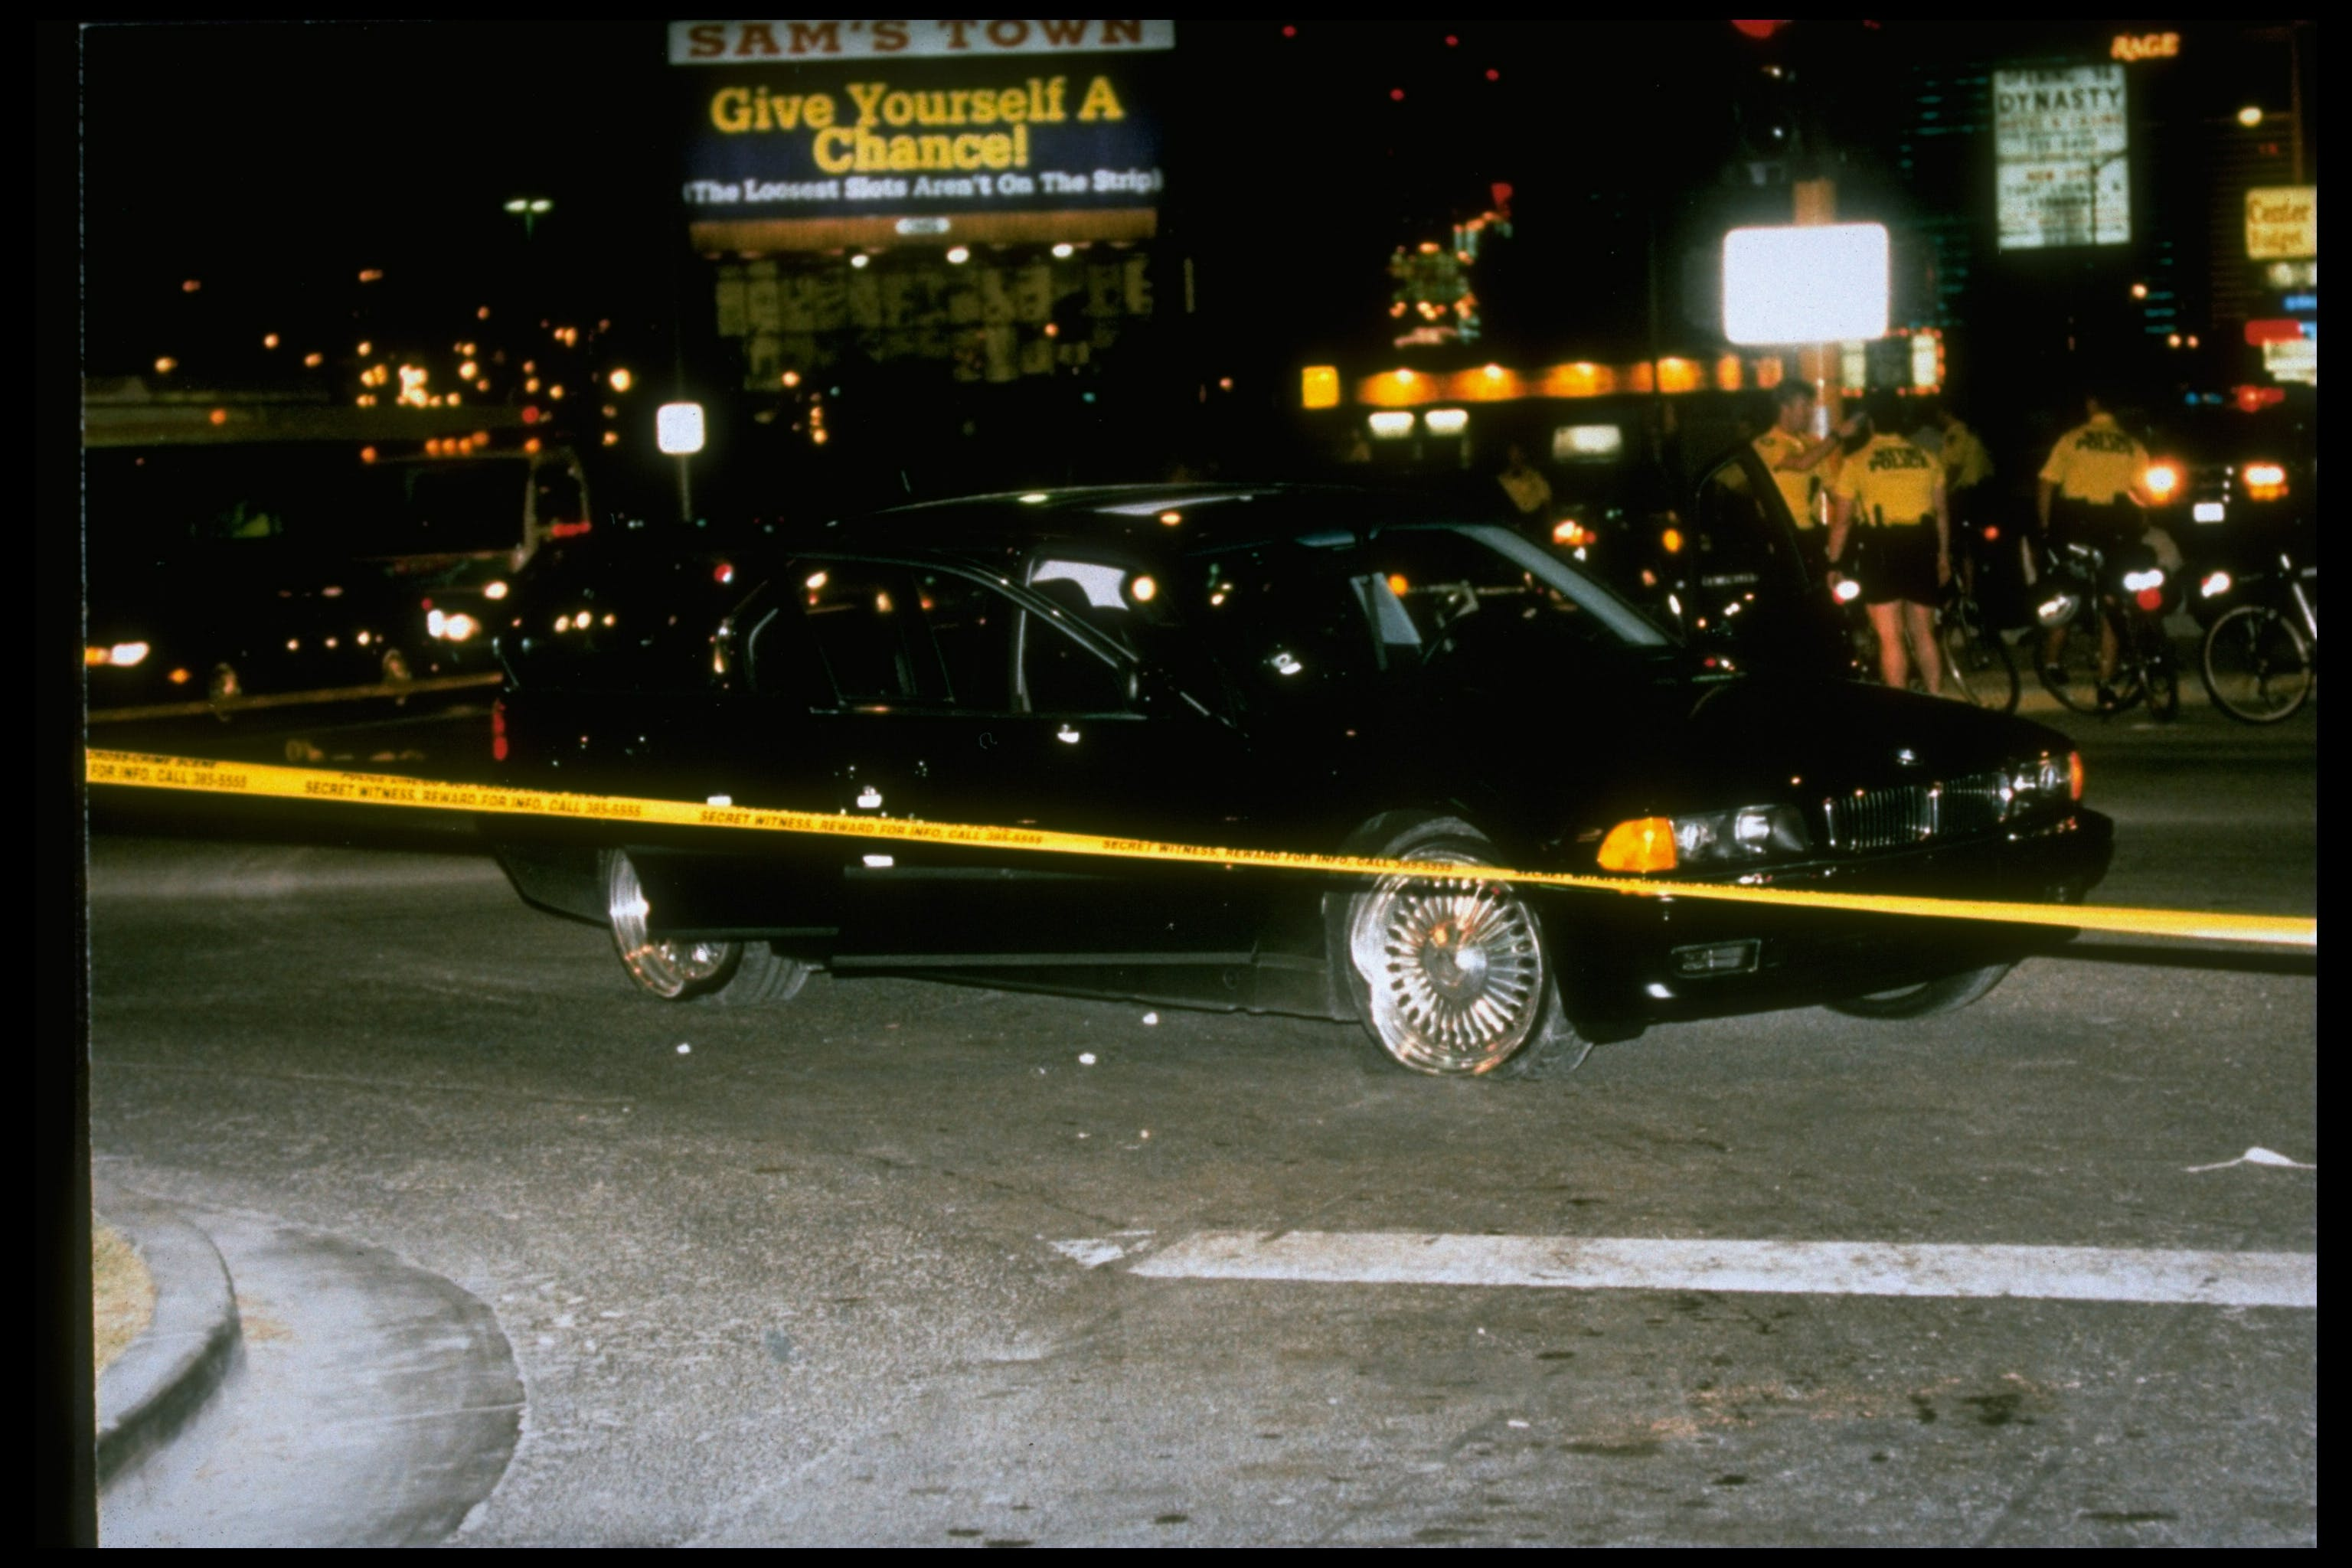 Following Rumors Vegas Police Confirm Tupac Murder Case Remains Unsolved body Following Rumors, Vegas Police Confirm Tupac Murder Case Remains Unsolved